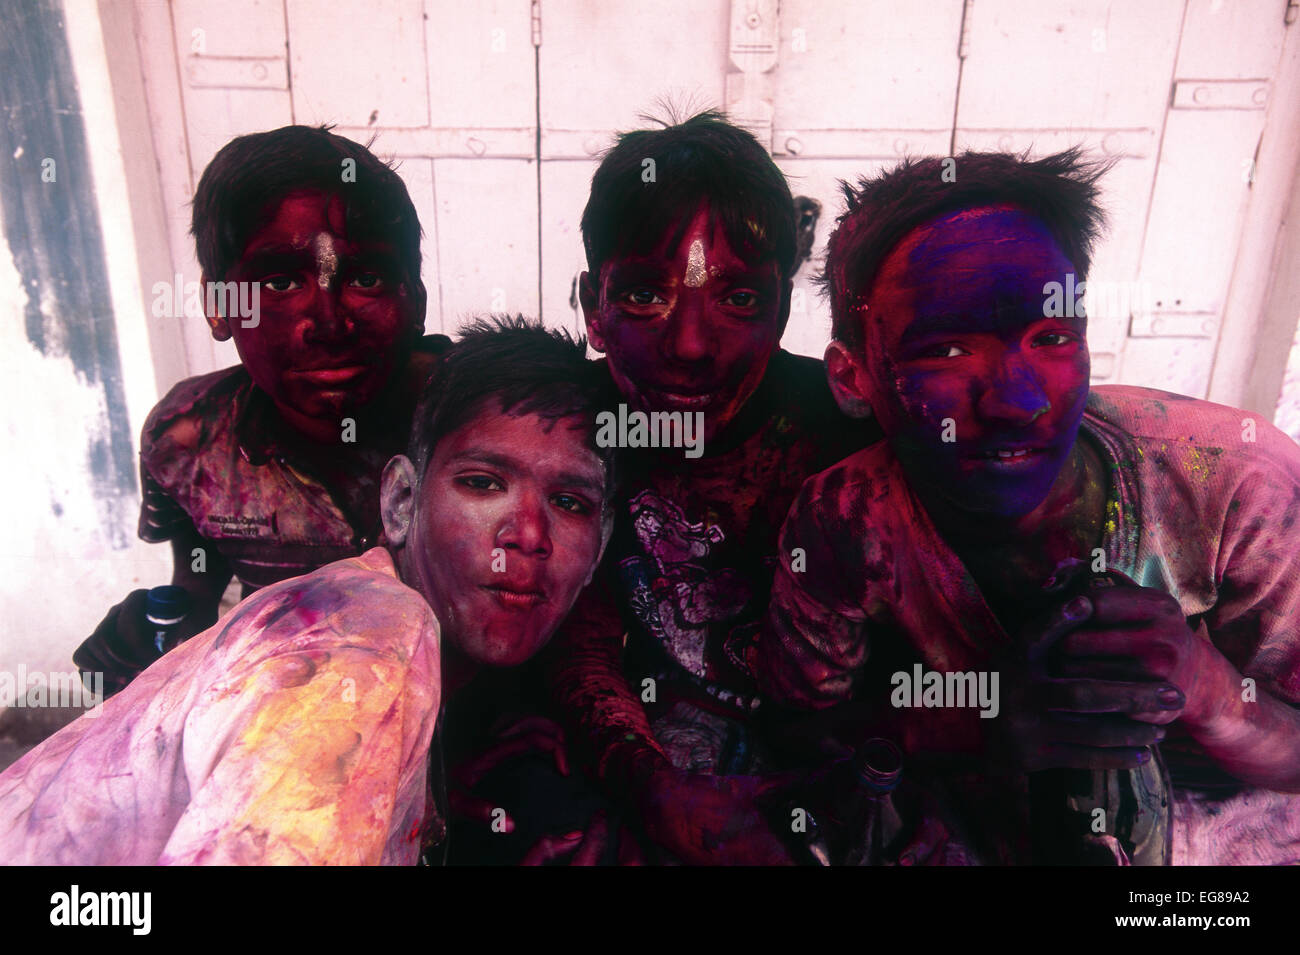 Youths enjoying religious Holi festival in India - Stock Image